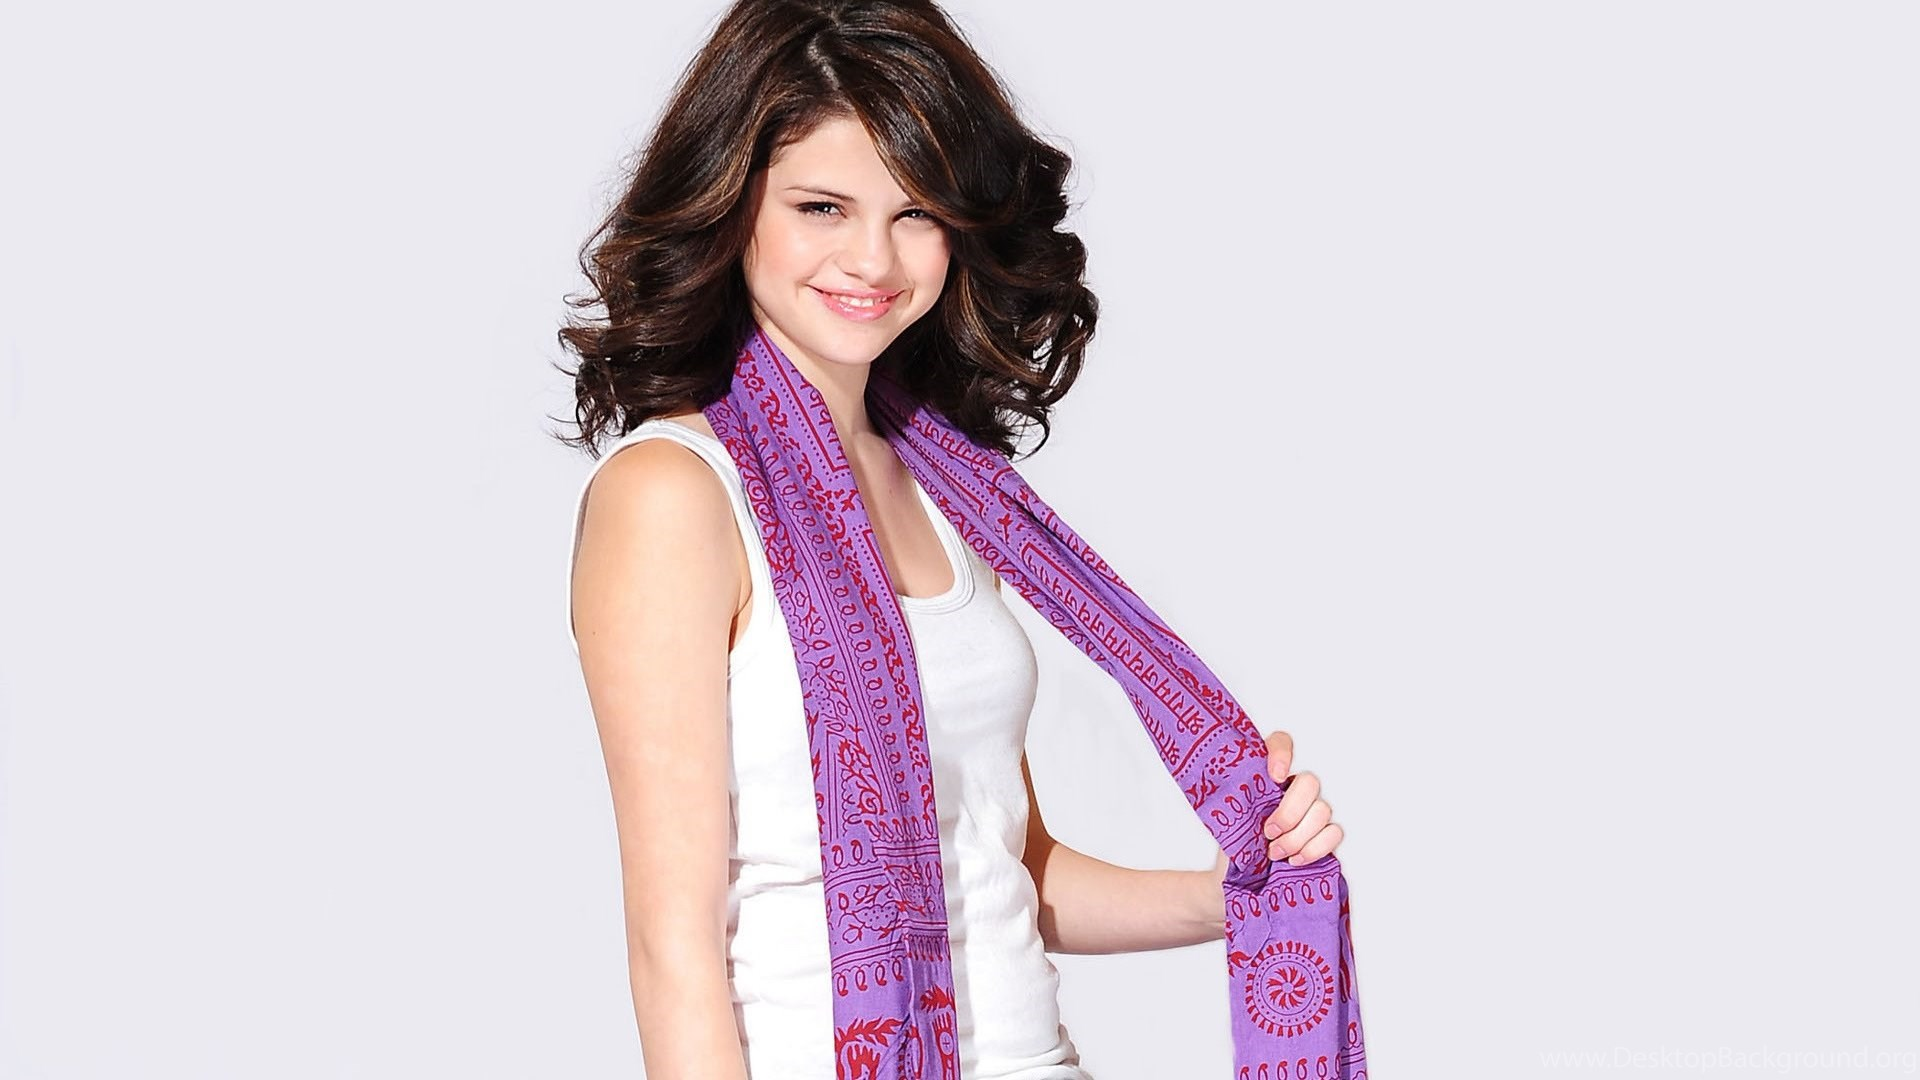 Selena Gomez Cute Celebrities 1920x1080 Hd Wallpapers And Free